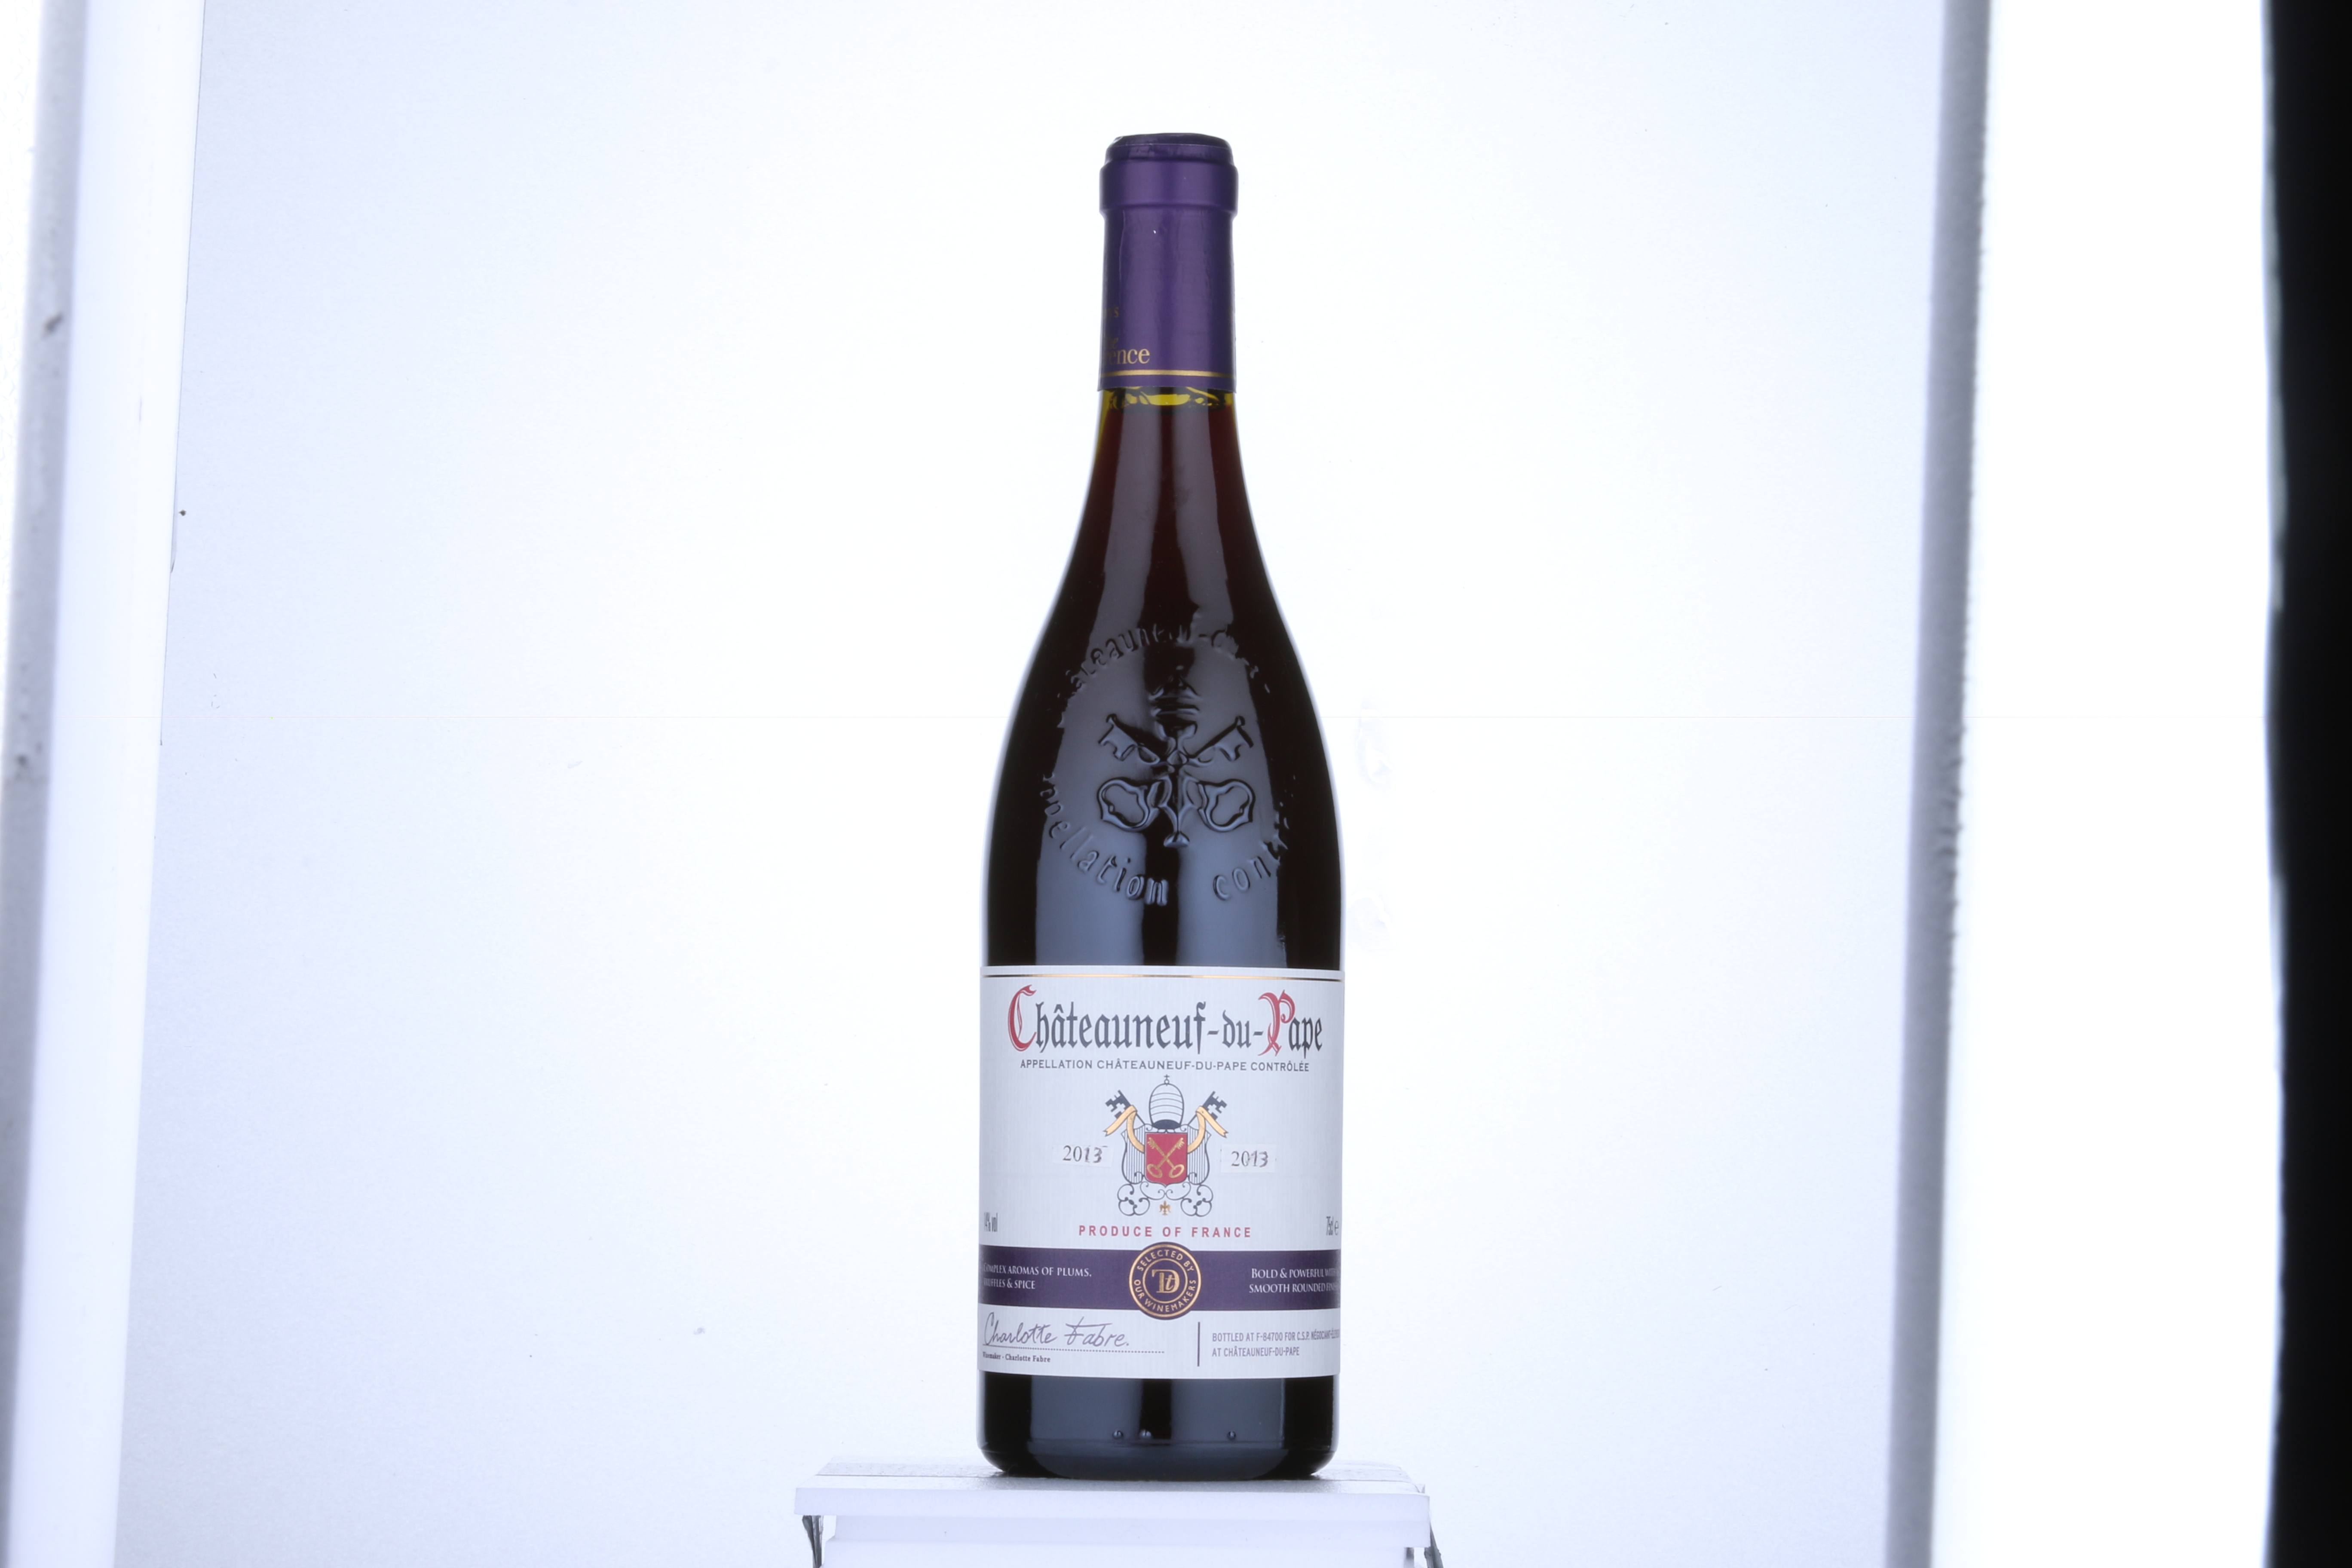 Sainsbury's Taste the Difference Châteauneuf-Du-Pape